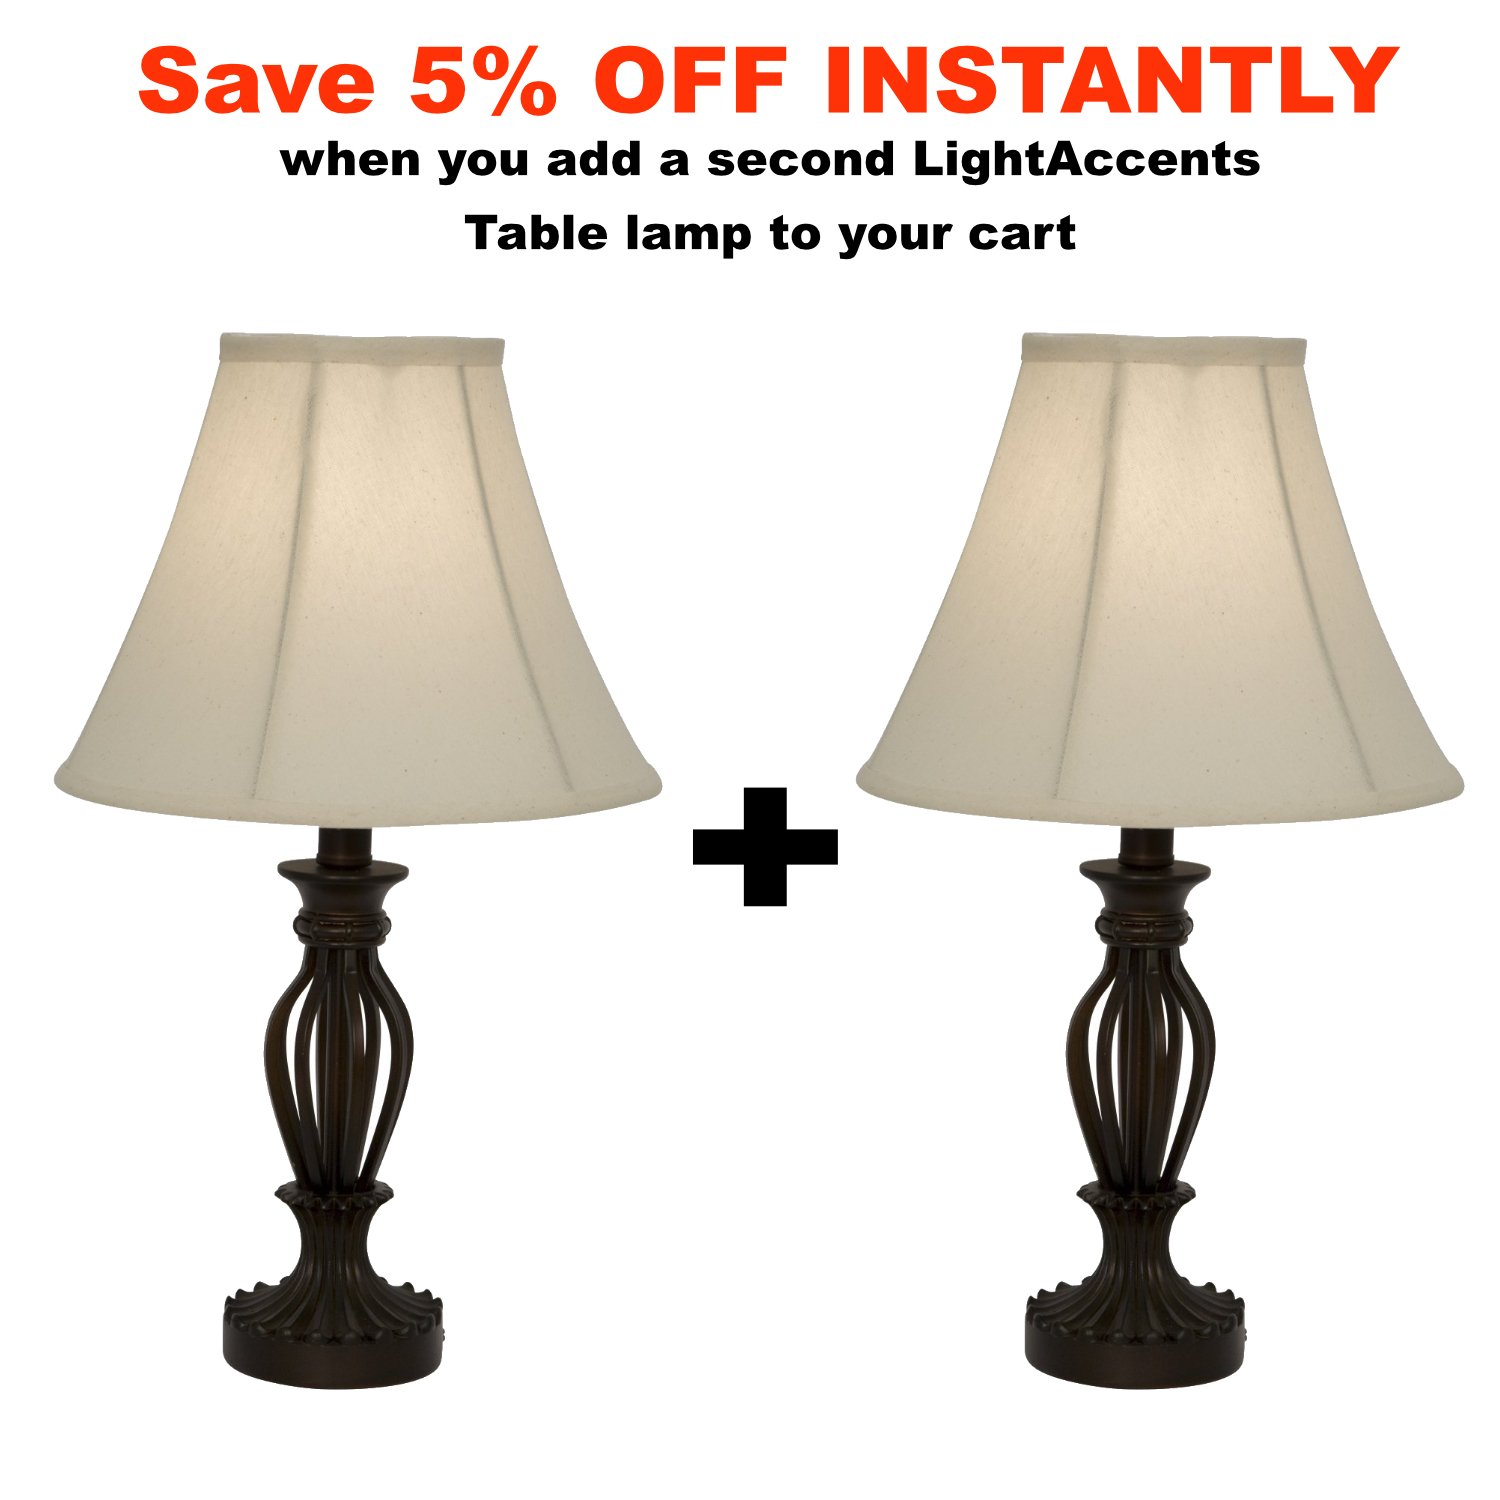 Clove battery operated cordless table lamp amazon - Light Accents Table Lamp 18 5 Inches Height Traditional Iron Scrollwork Table Lamp Bronze Amazon Com